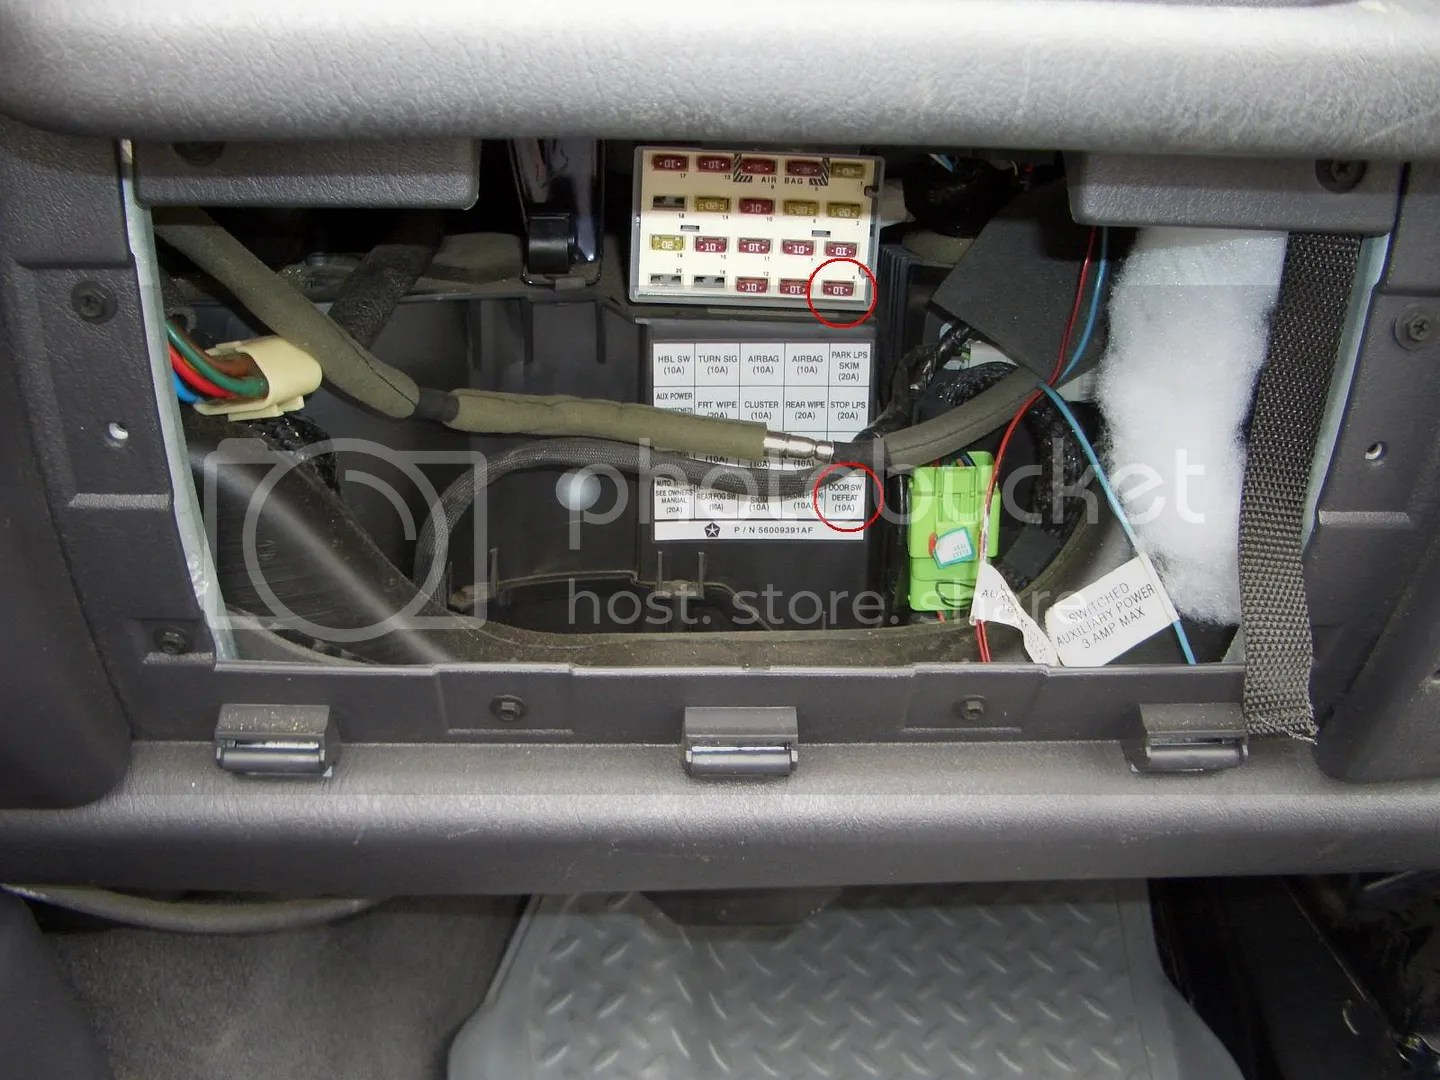 hight resolution of jeep jk interior fuse box wiring diagram name 2010 jeep wrangler fuse box location 2016 jeep